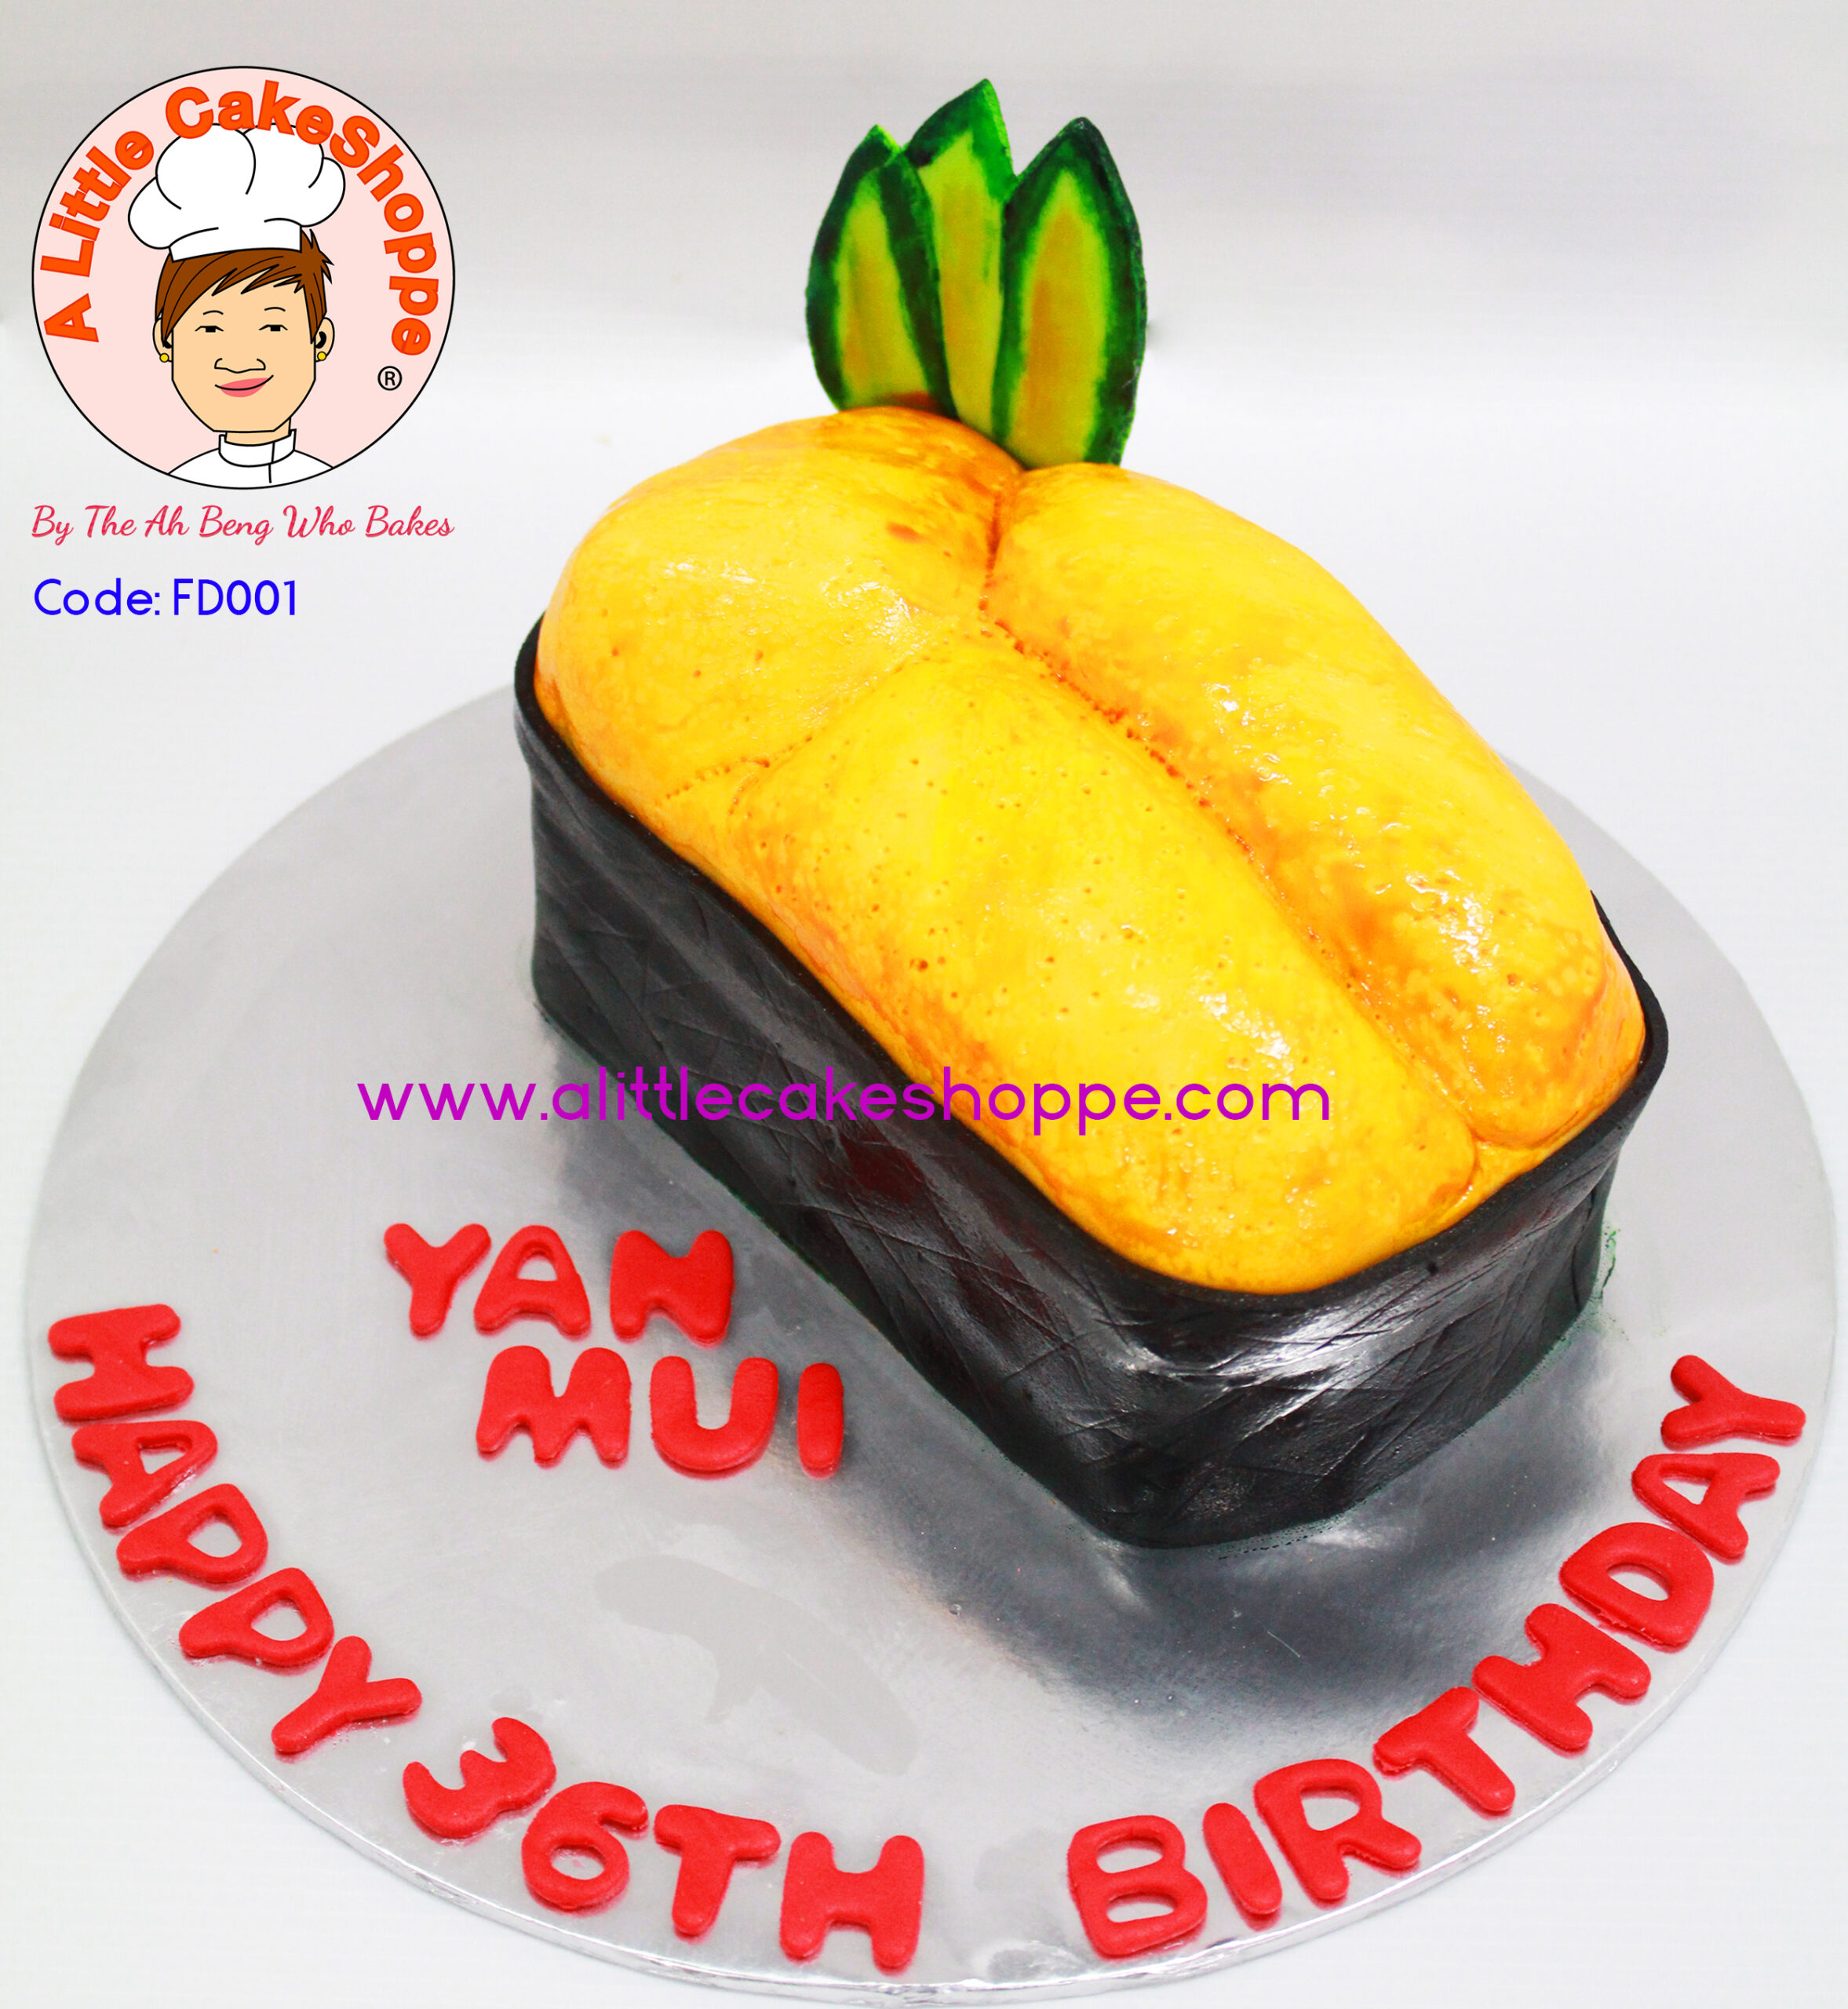 Best Customised Cake Shop Singapore custom cake 2D 3D birthday cake cupcakes desserts wedding corporate events anniversary 1st birthday 21st birthday fondant fresh cream buttercream cakes alittlecakeshoppe a little cake shoppe compliments review singapore bakers SG cake shop cakeshop ah beng who bakes sushi food